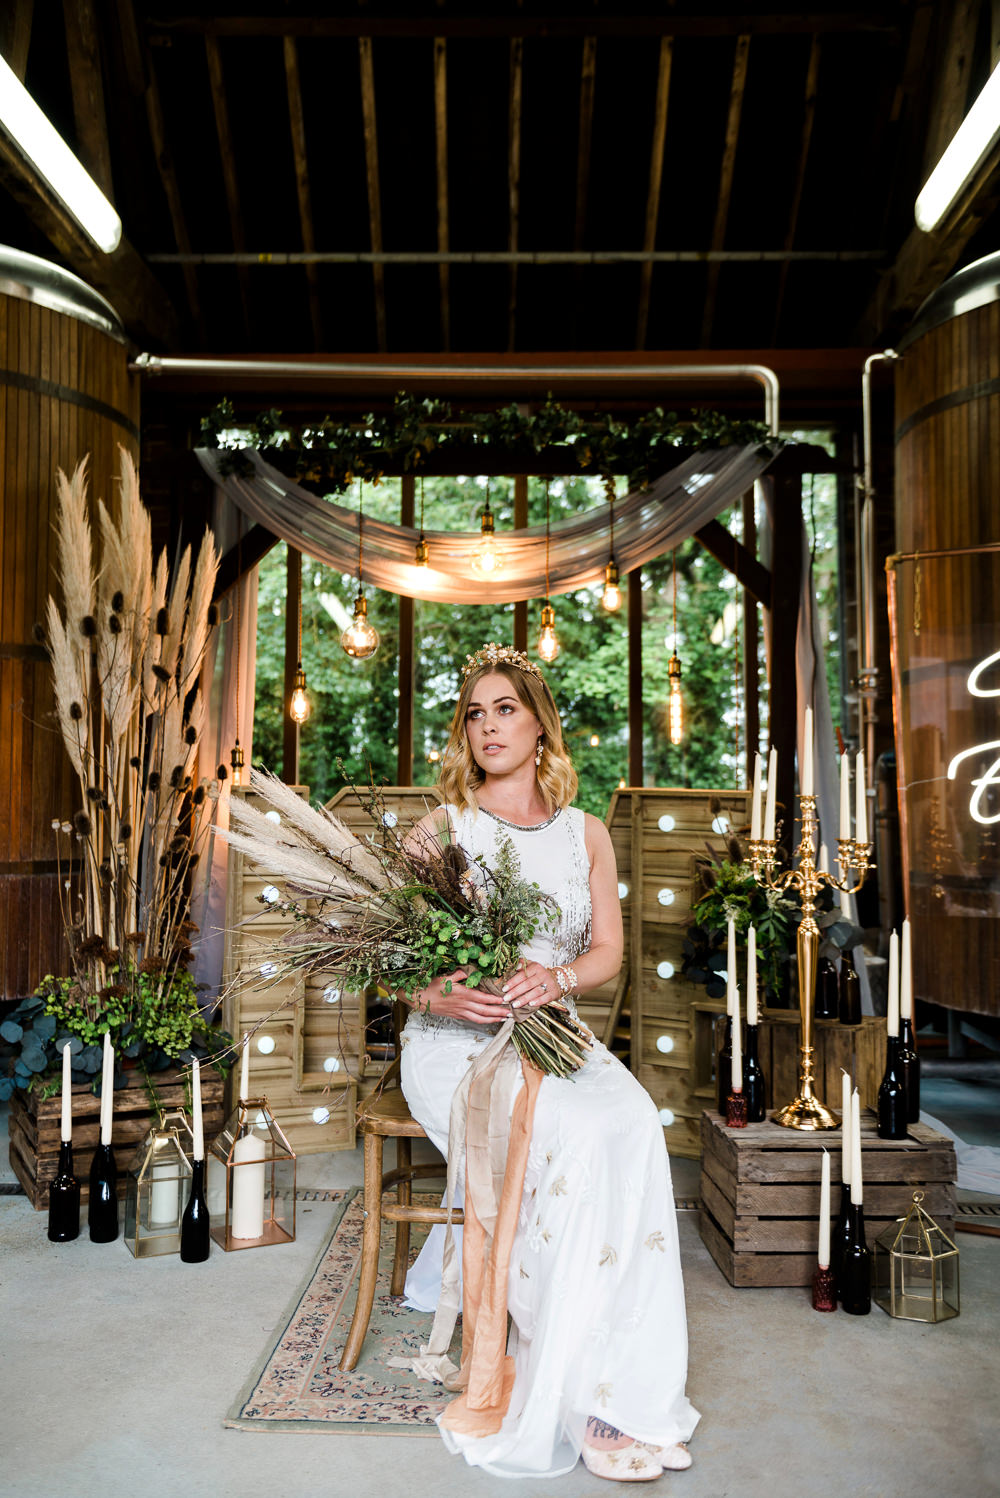 Decor Decoration Backdrop Ceremony Fetoon Lights Edison Lightbulbs Flower Arch Pampas Grass Crates Candles LOVE Letters Indie Wedding Ideas Kat Antos-Lewis Photography